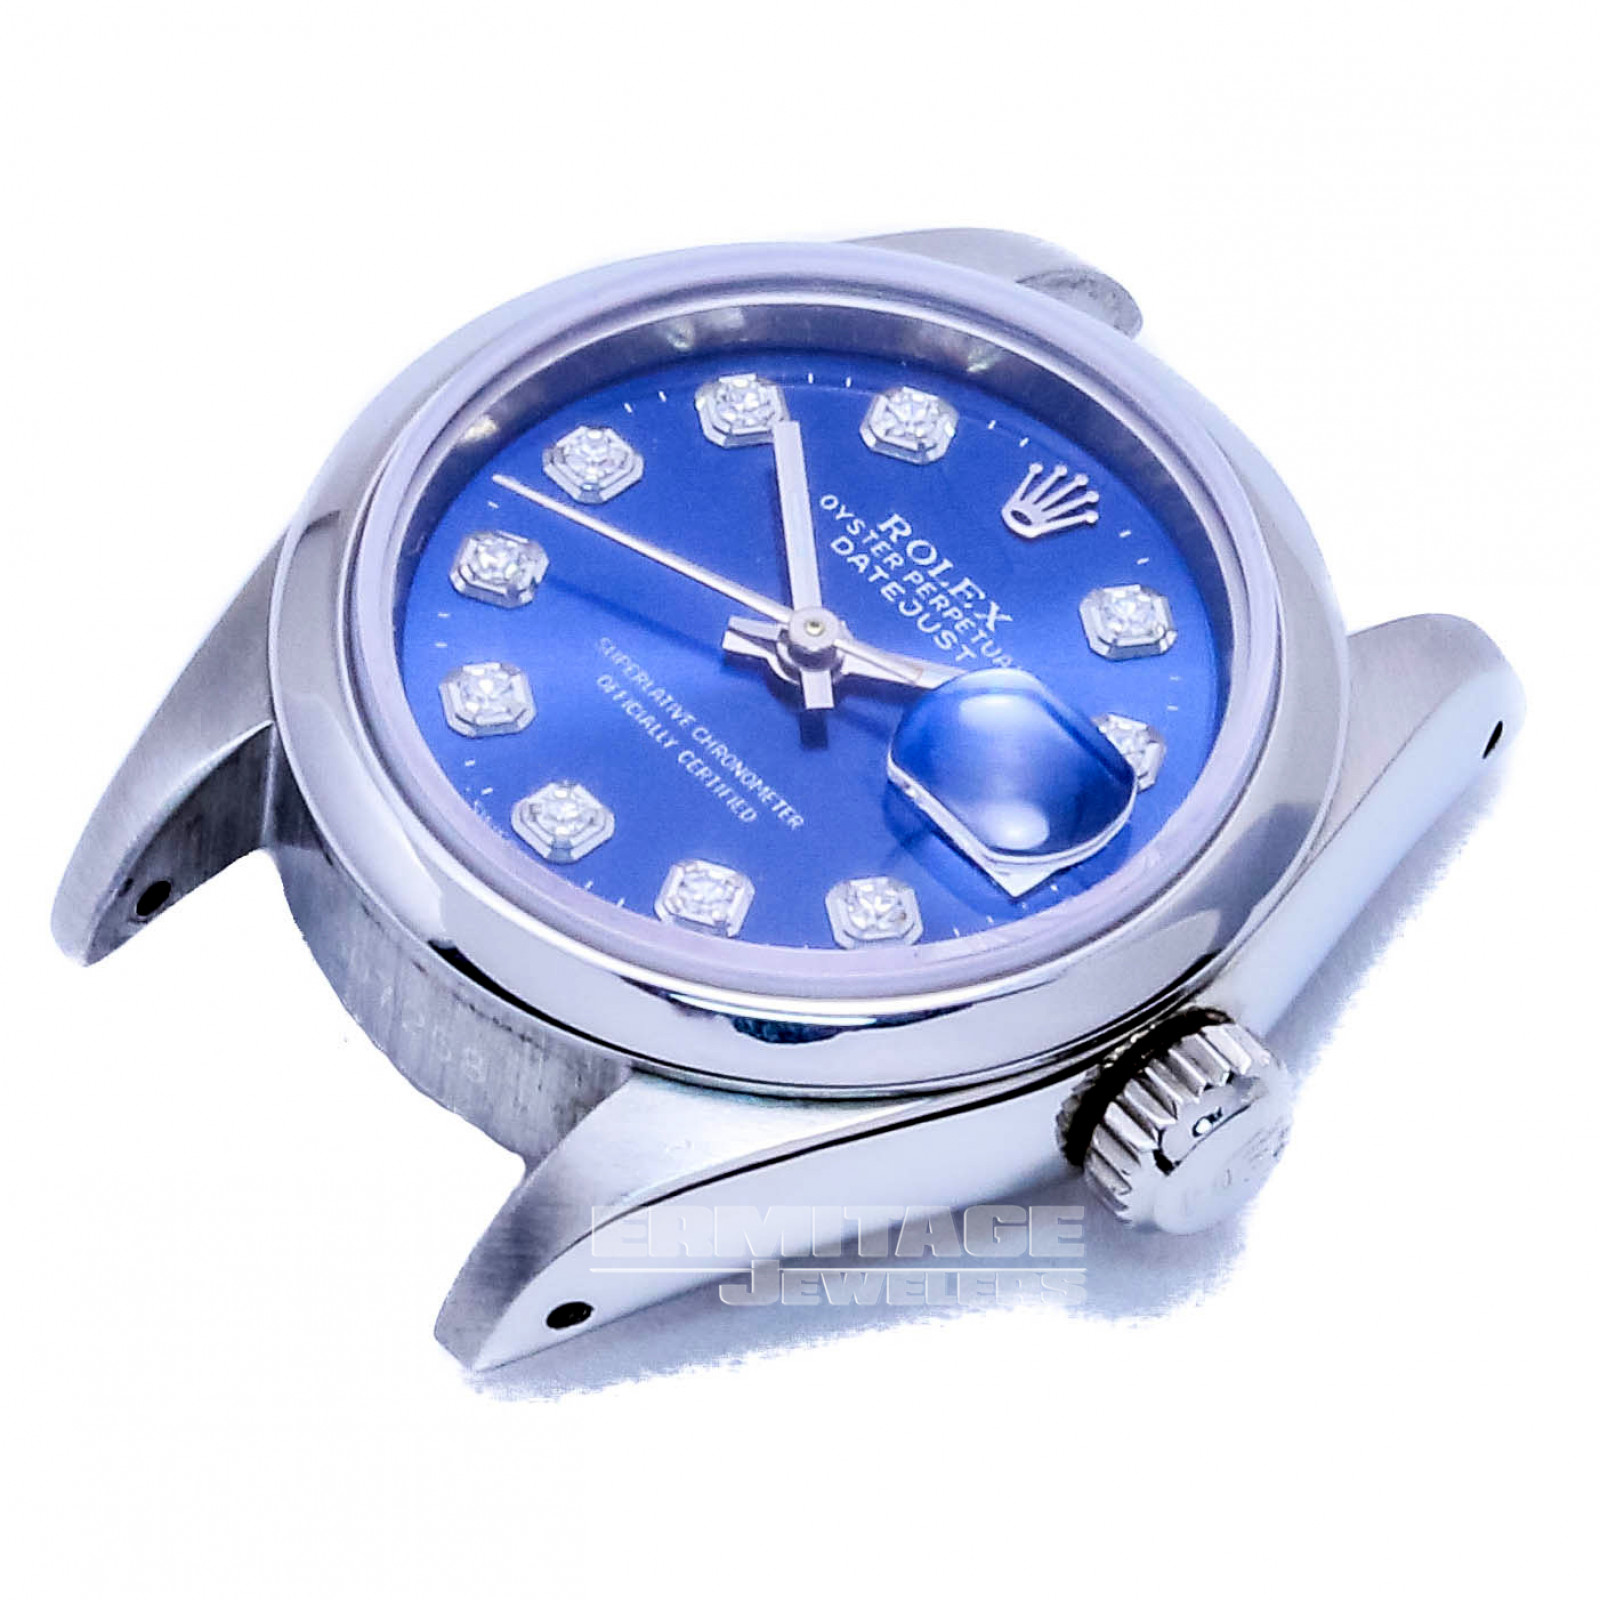 Rolex Datejust 69160 with Blue Dial